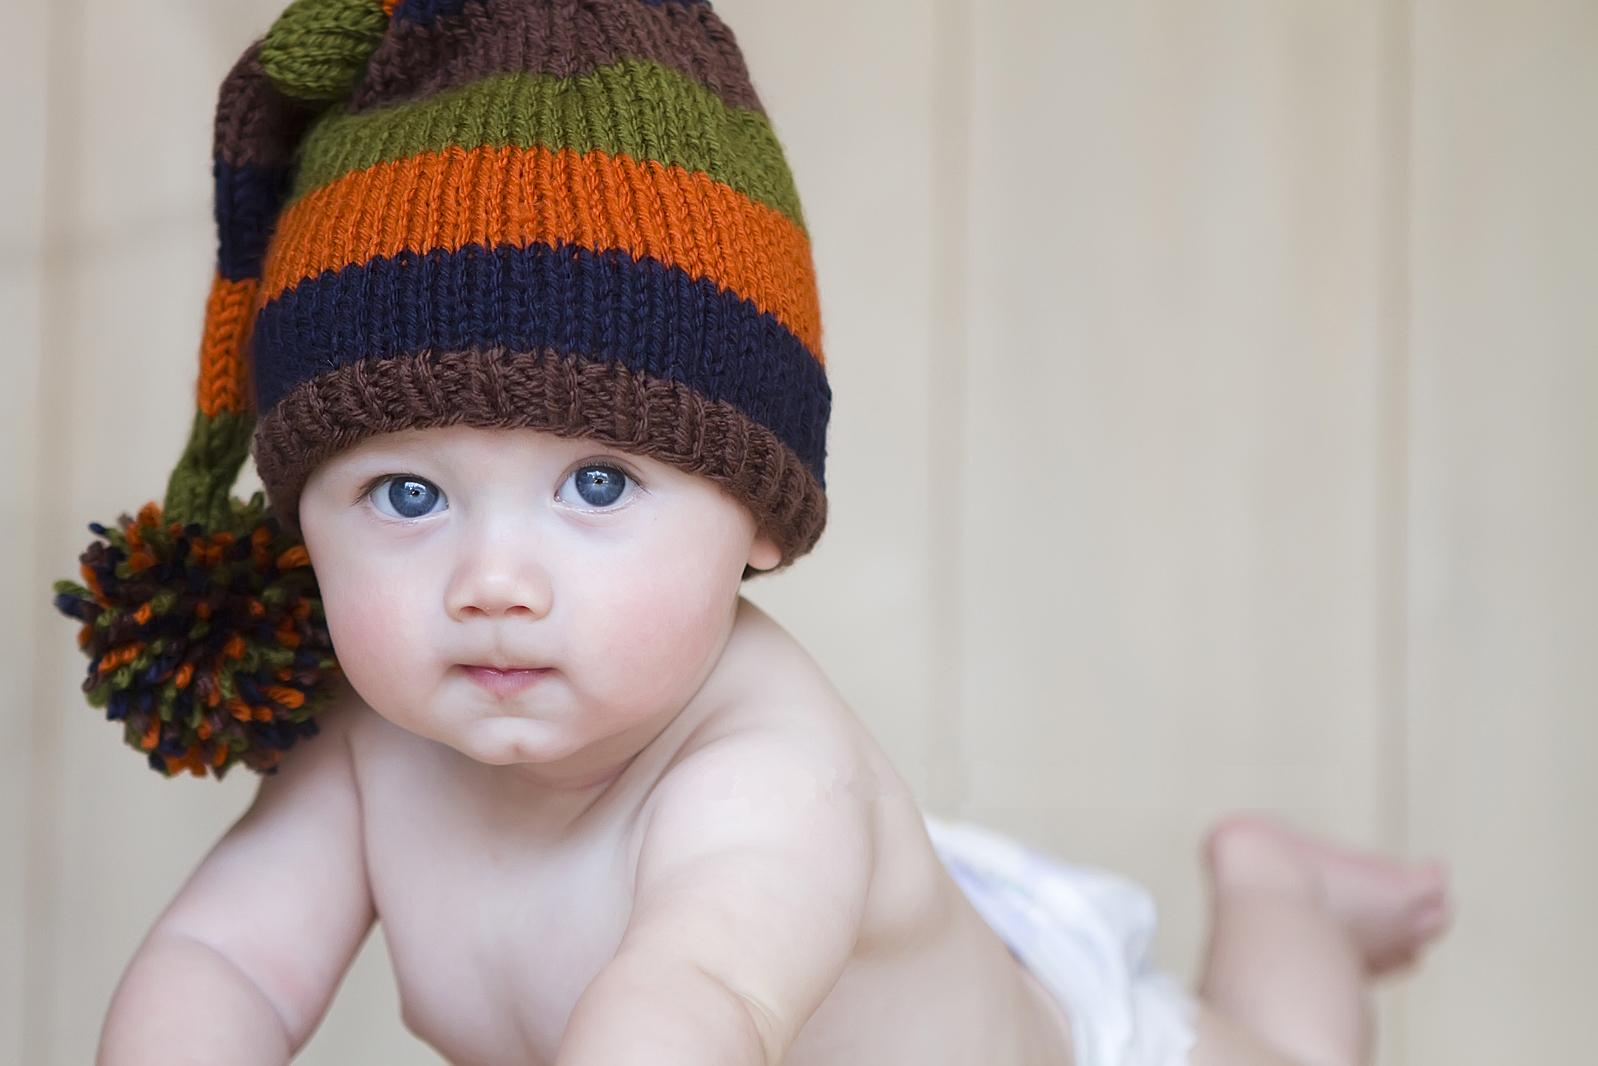 Cute Baby Wallpaper Download - Baby Good Morning Wishes , HD Wallpaper & Backgrounds